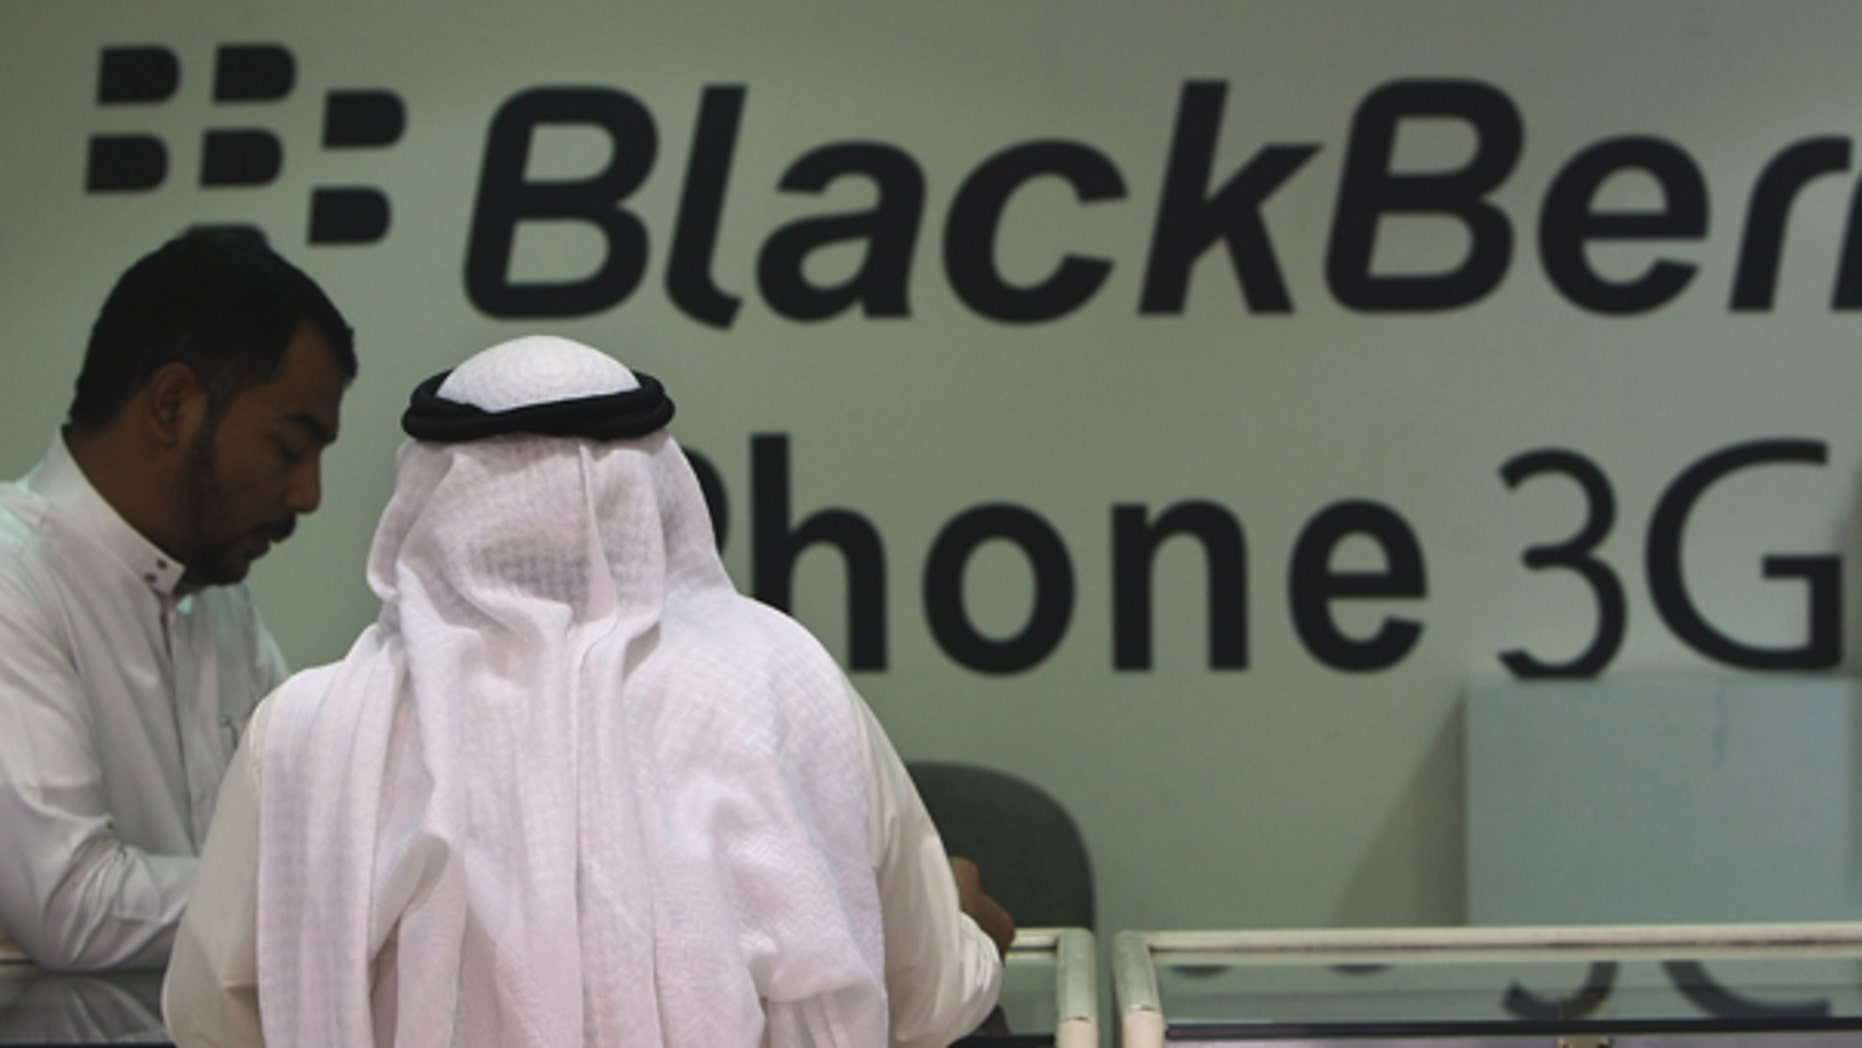 Aug. 5: A Saudi customer is served in a mobile shop at a market in the capital Riyadh, Saudi Arabia. Some Saudis tried to sell their BlackBerrys ahead of an anticipated ban on the smart phone's messenger service